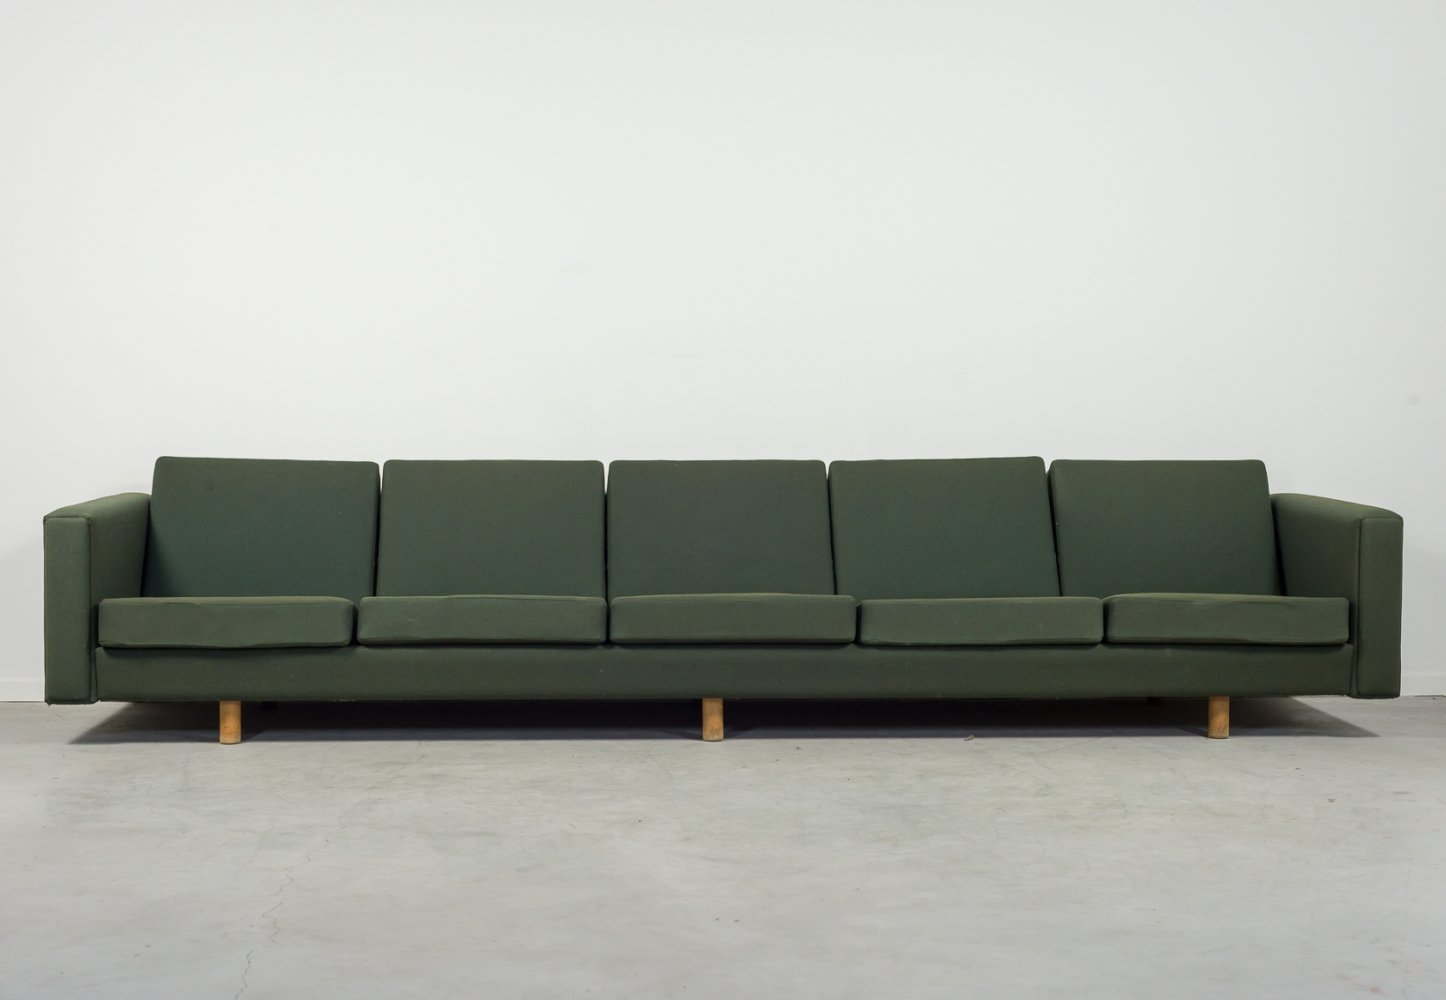 Mid-Century Hans Wegner five seats sofa model GE300 by Getama